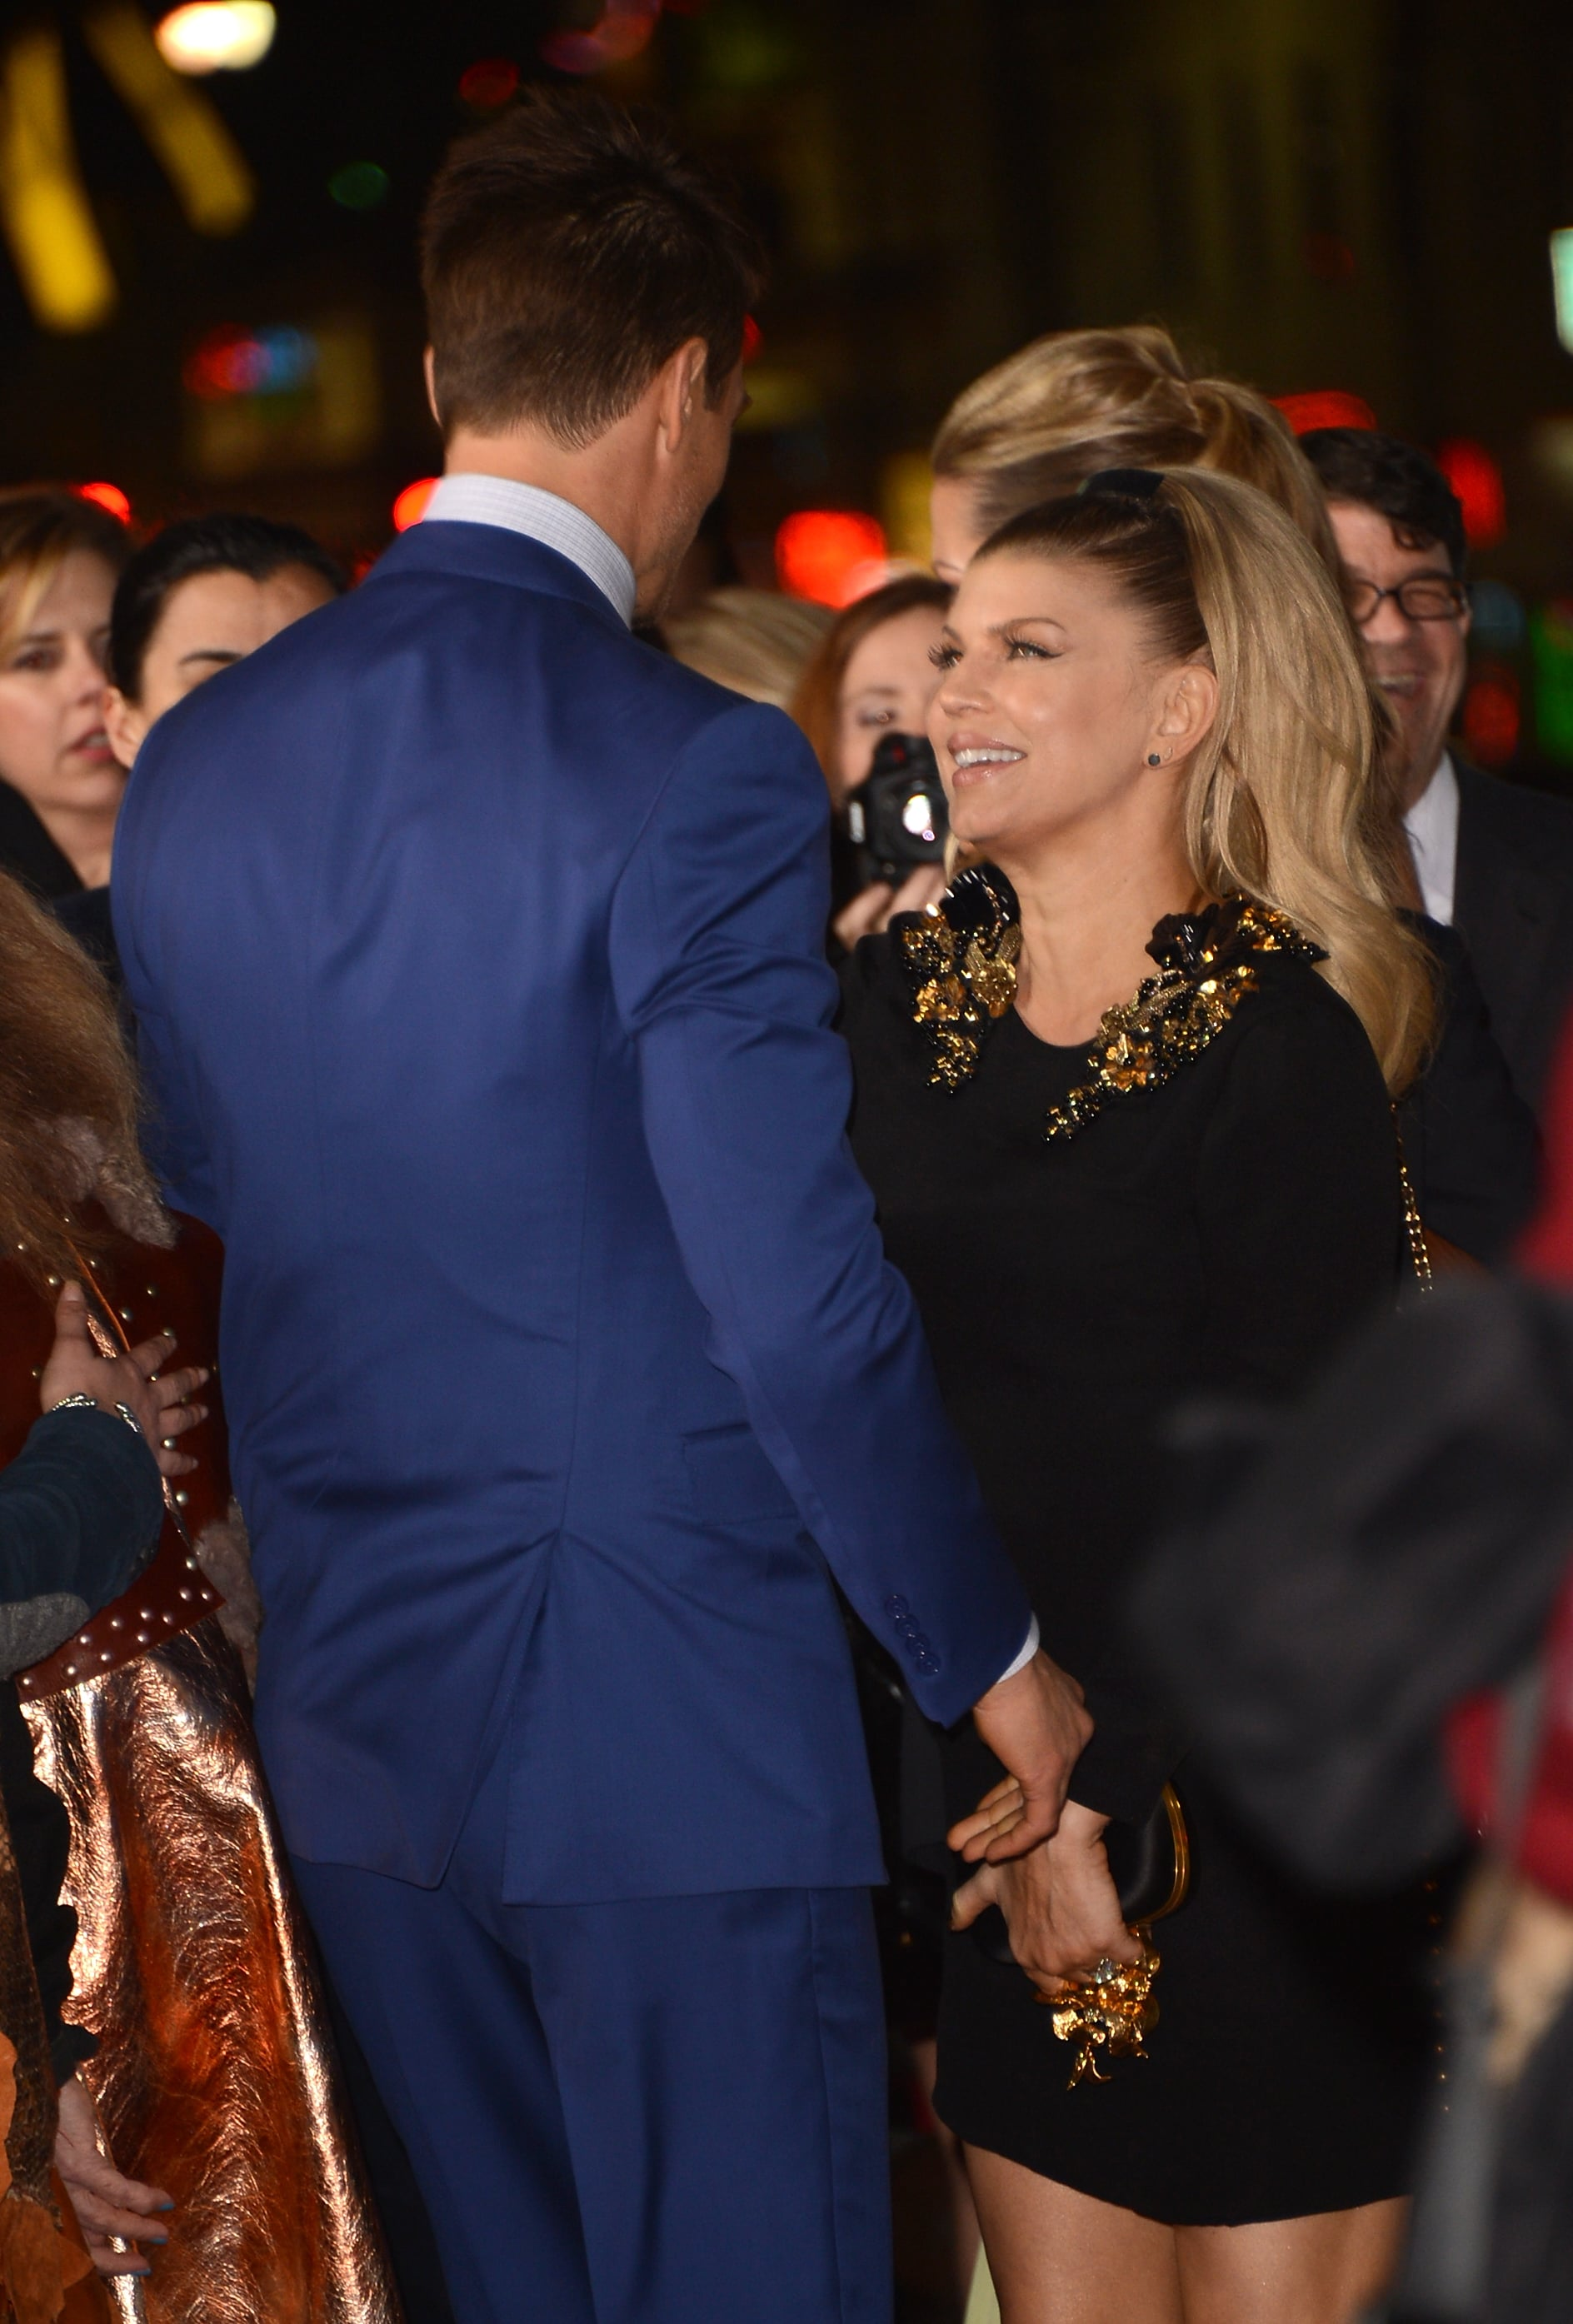 Fergie looked at Josh Duhamel lovingly at the Safe Haven premiere in Hollywood in February.